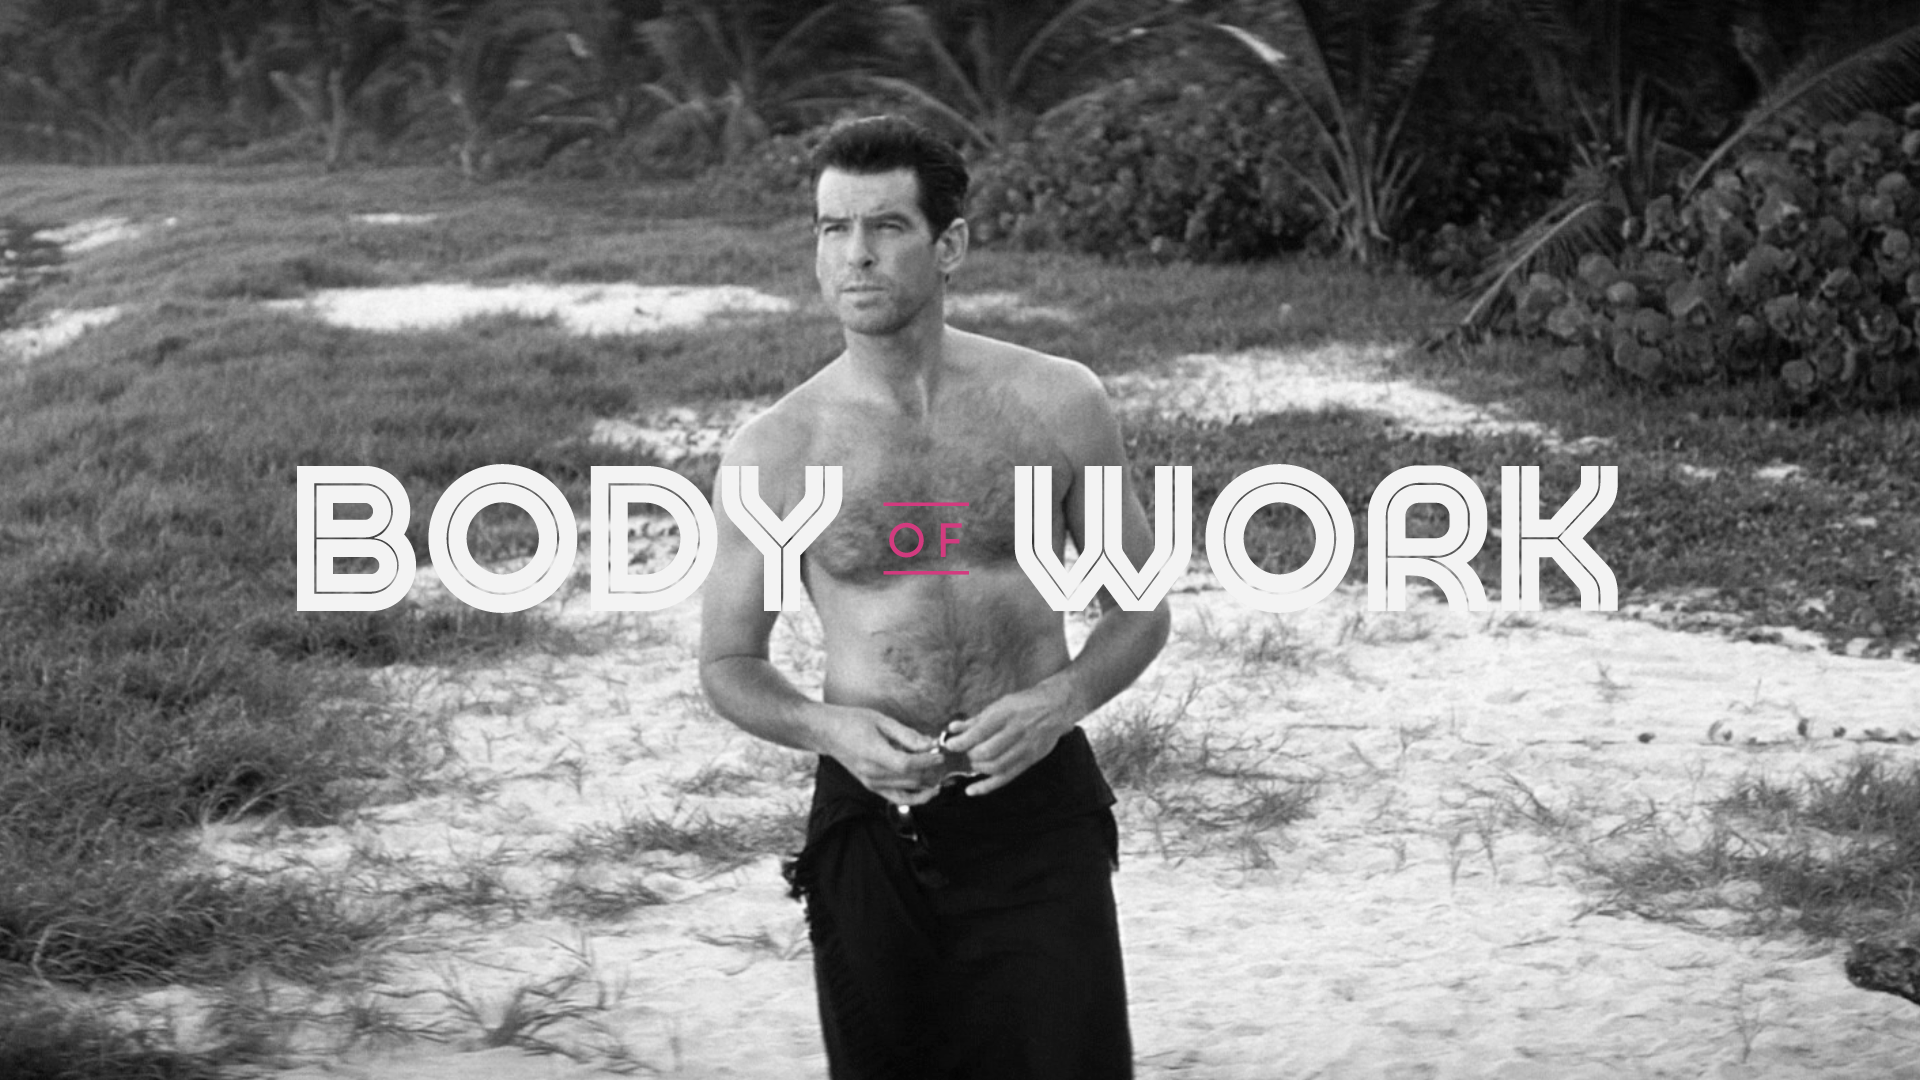 Bodyofwork pierce brosnan final large thumbnail 3 override